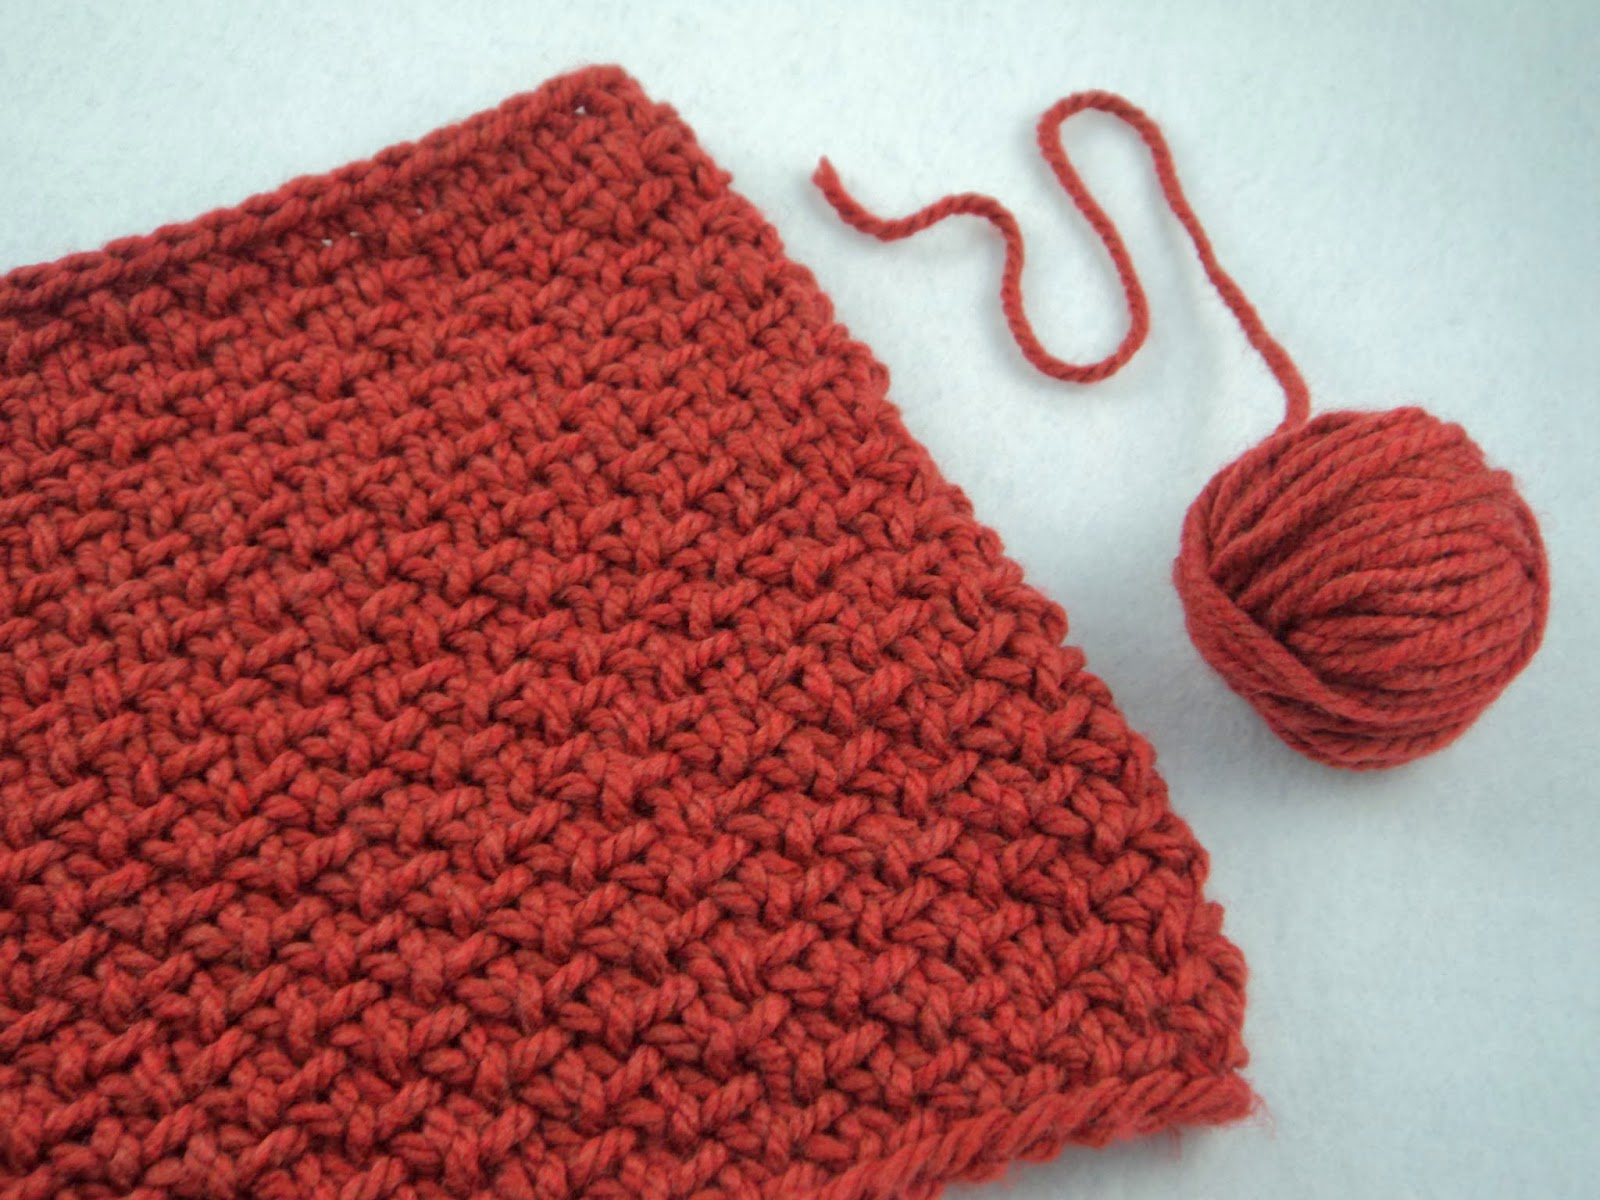 moniqueraedesigns: 4 Chunky Neck Warmers Textured Knit Pattern Now Available!